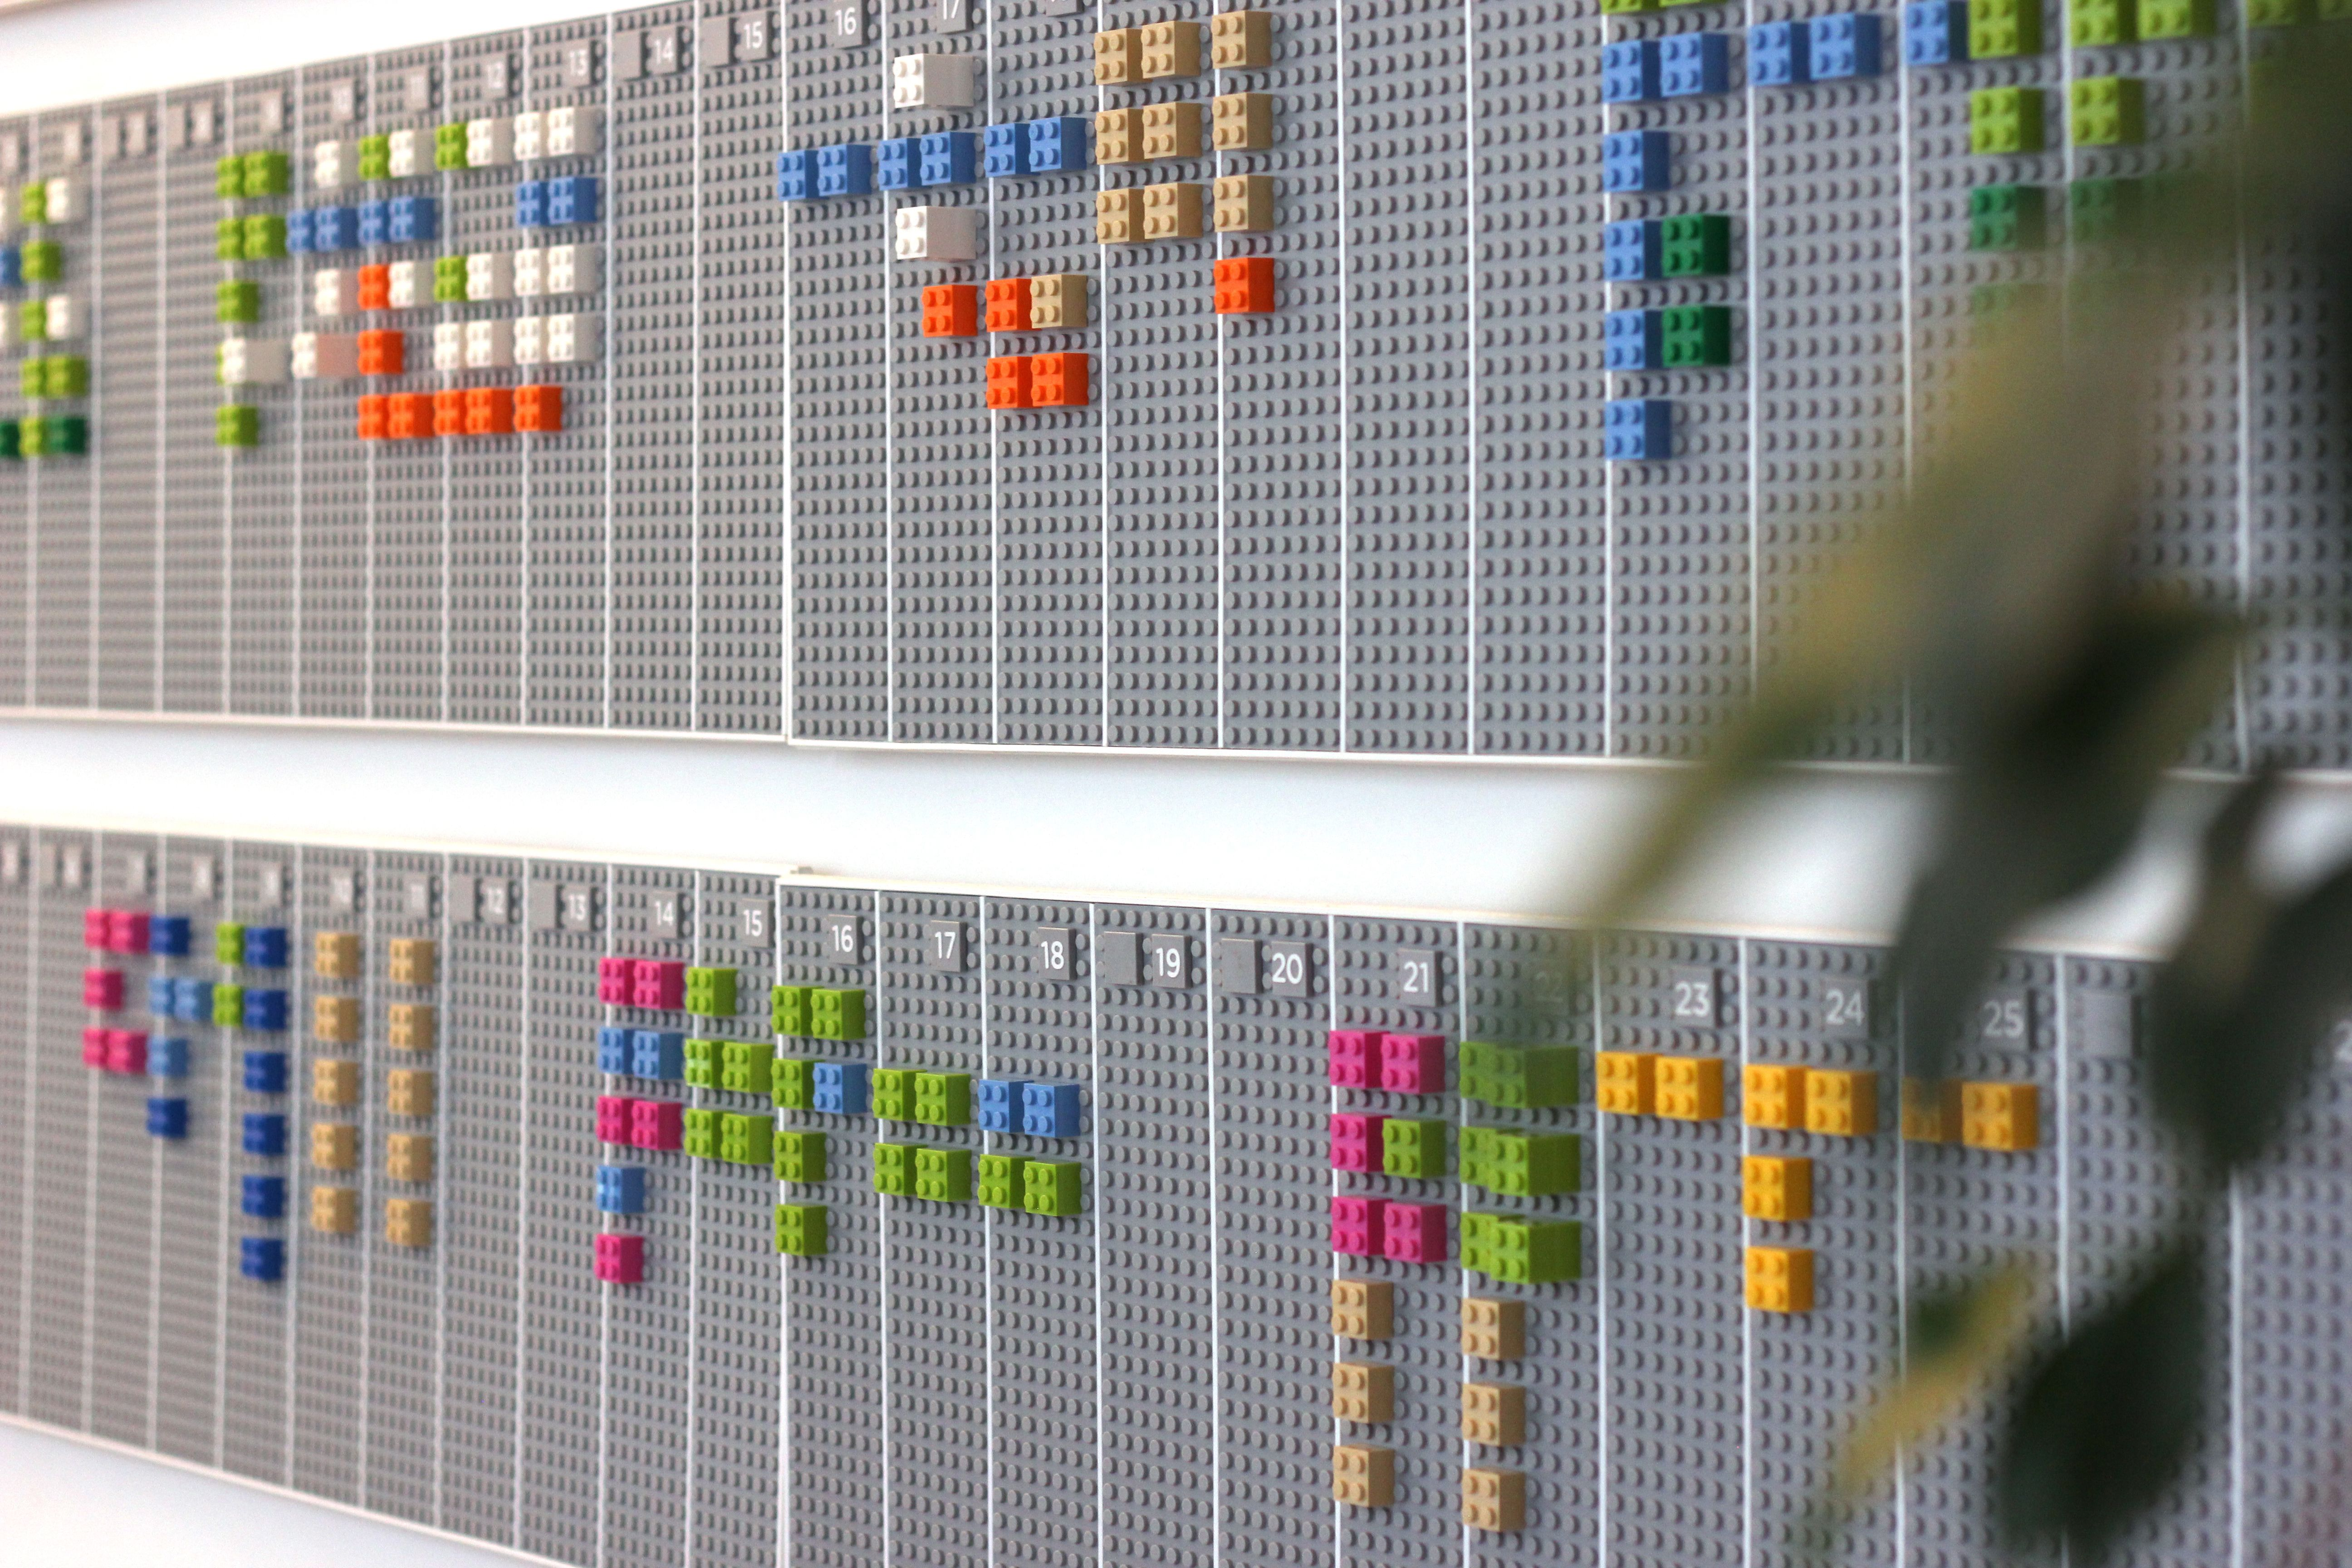 lego4 This awesome LEGO wall planner syncs digitally with your Google Calendar account